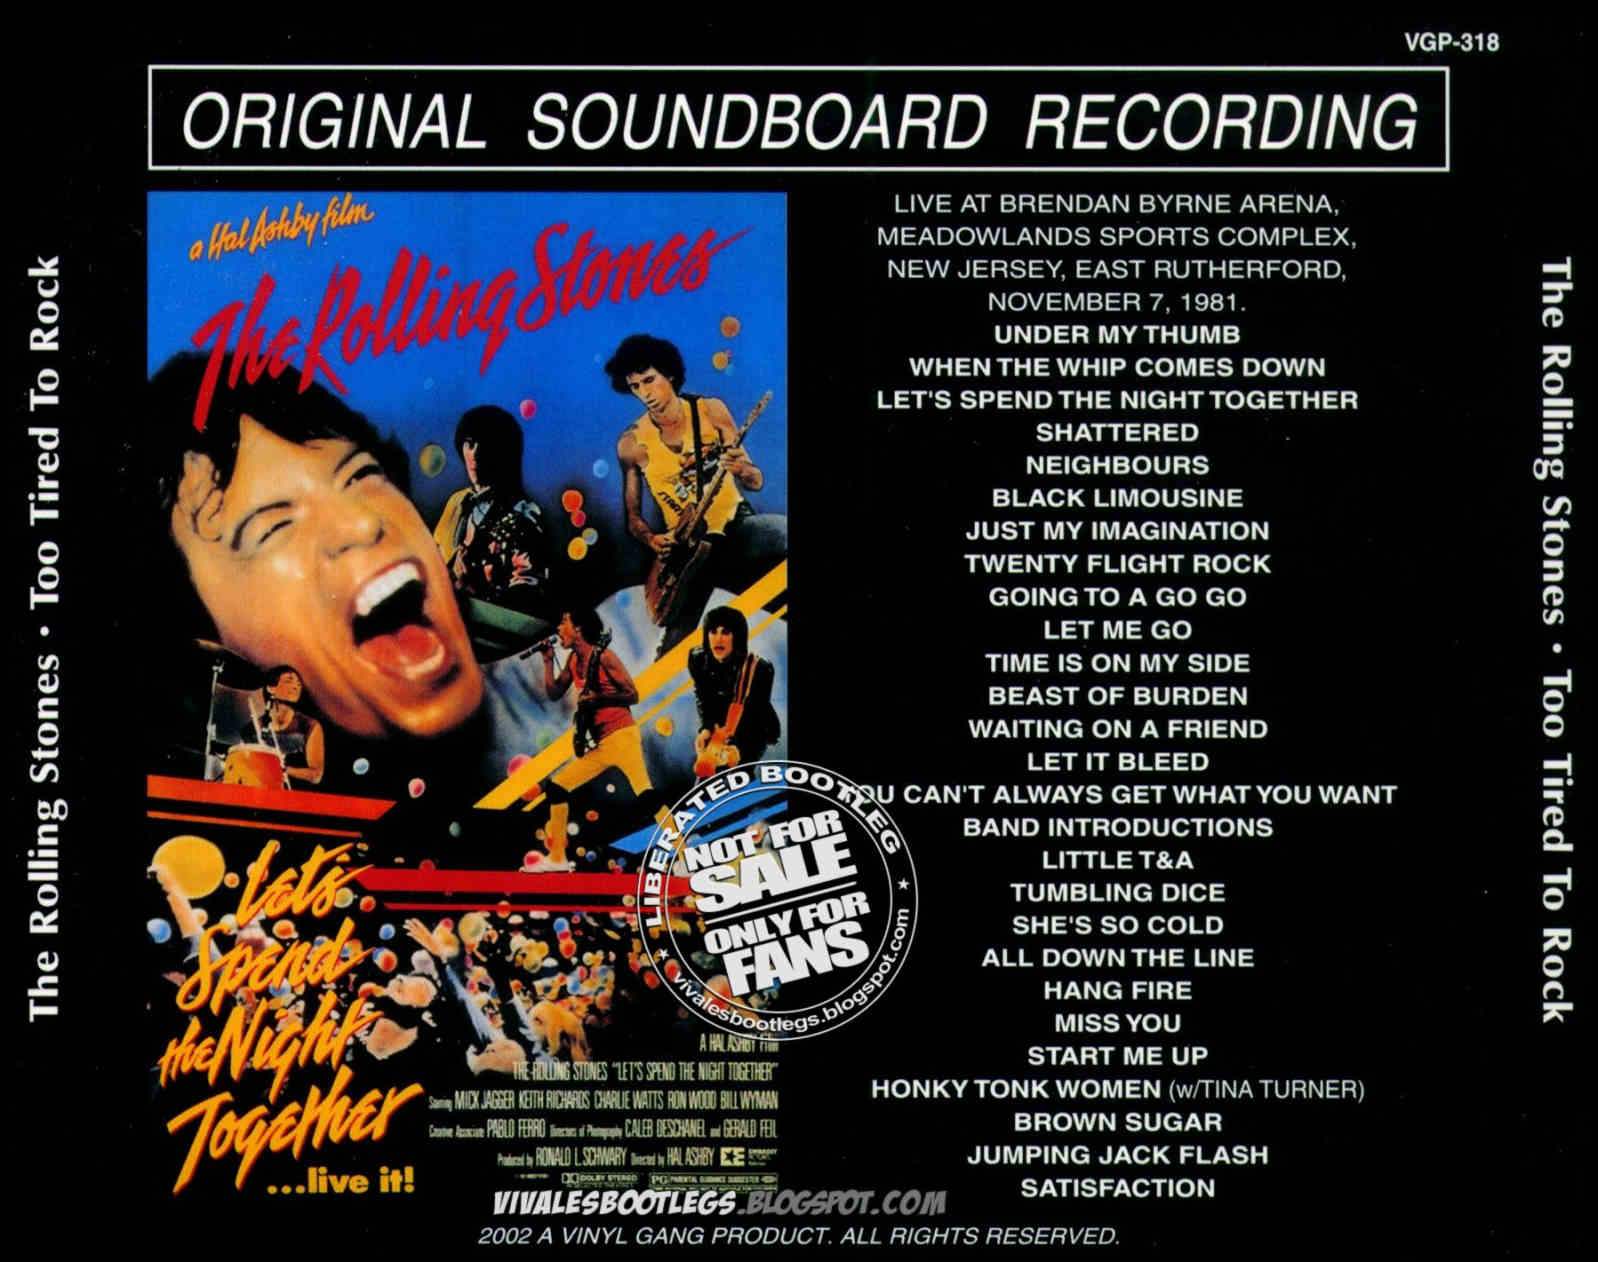 Rolling Stones Flac